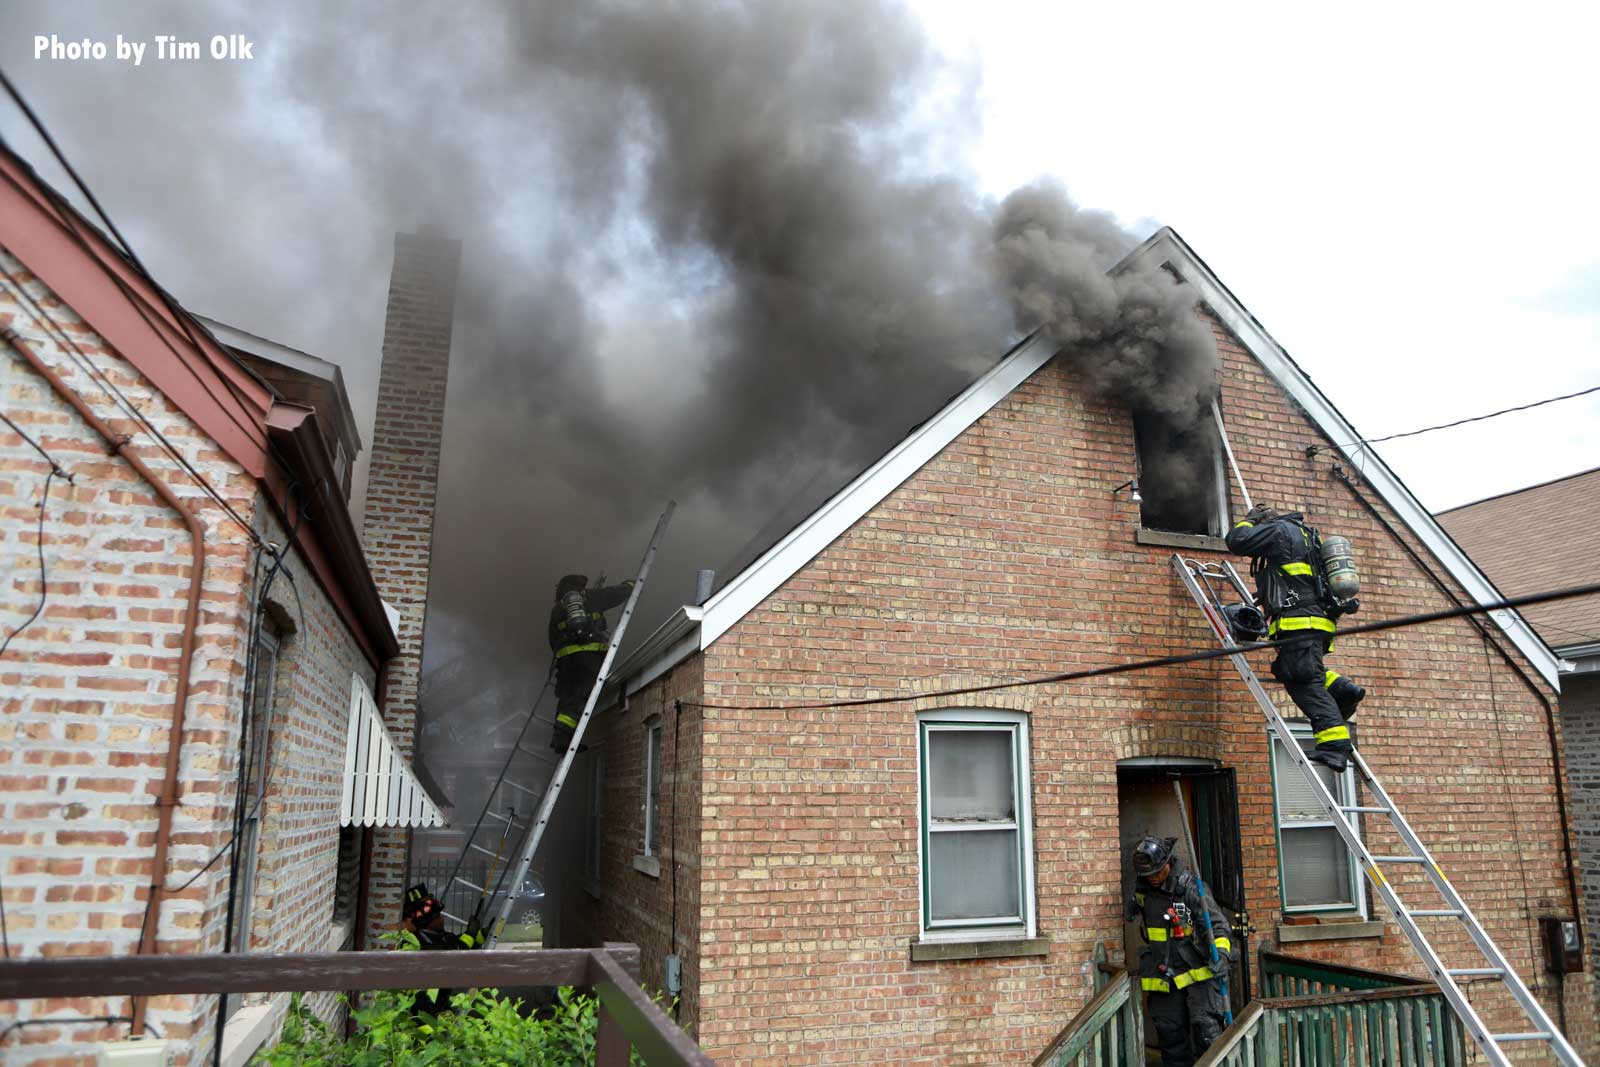 Dark smoke emerges from windows and roof of home